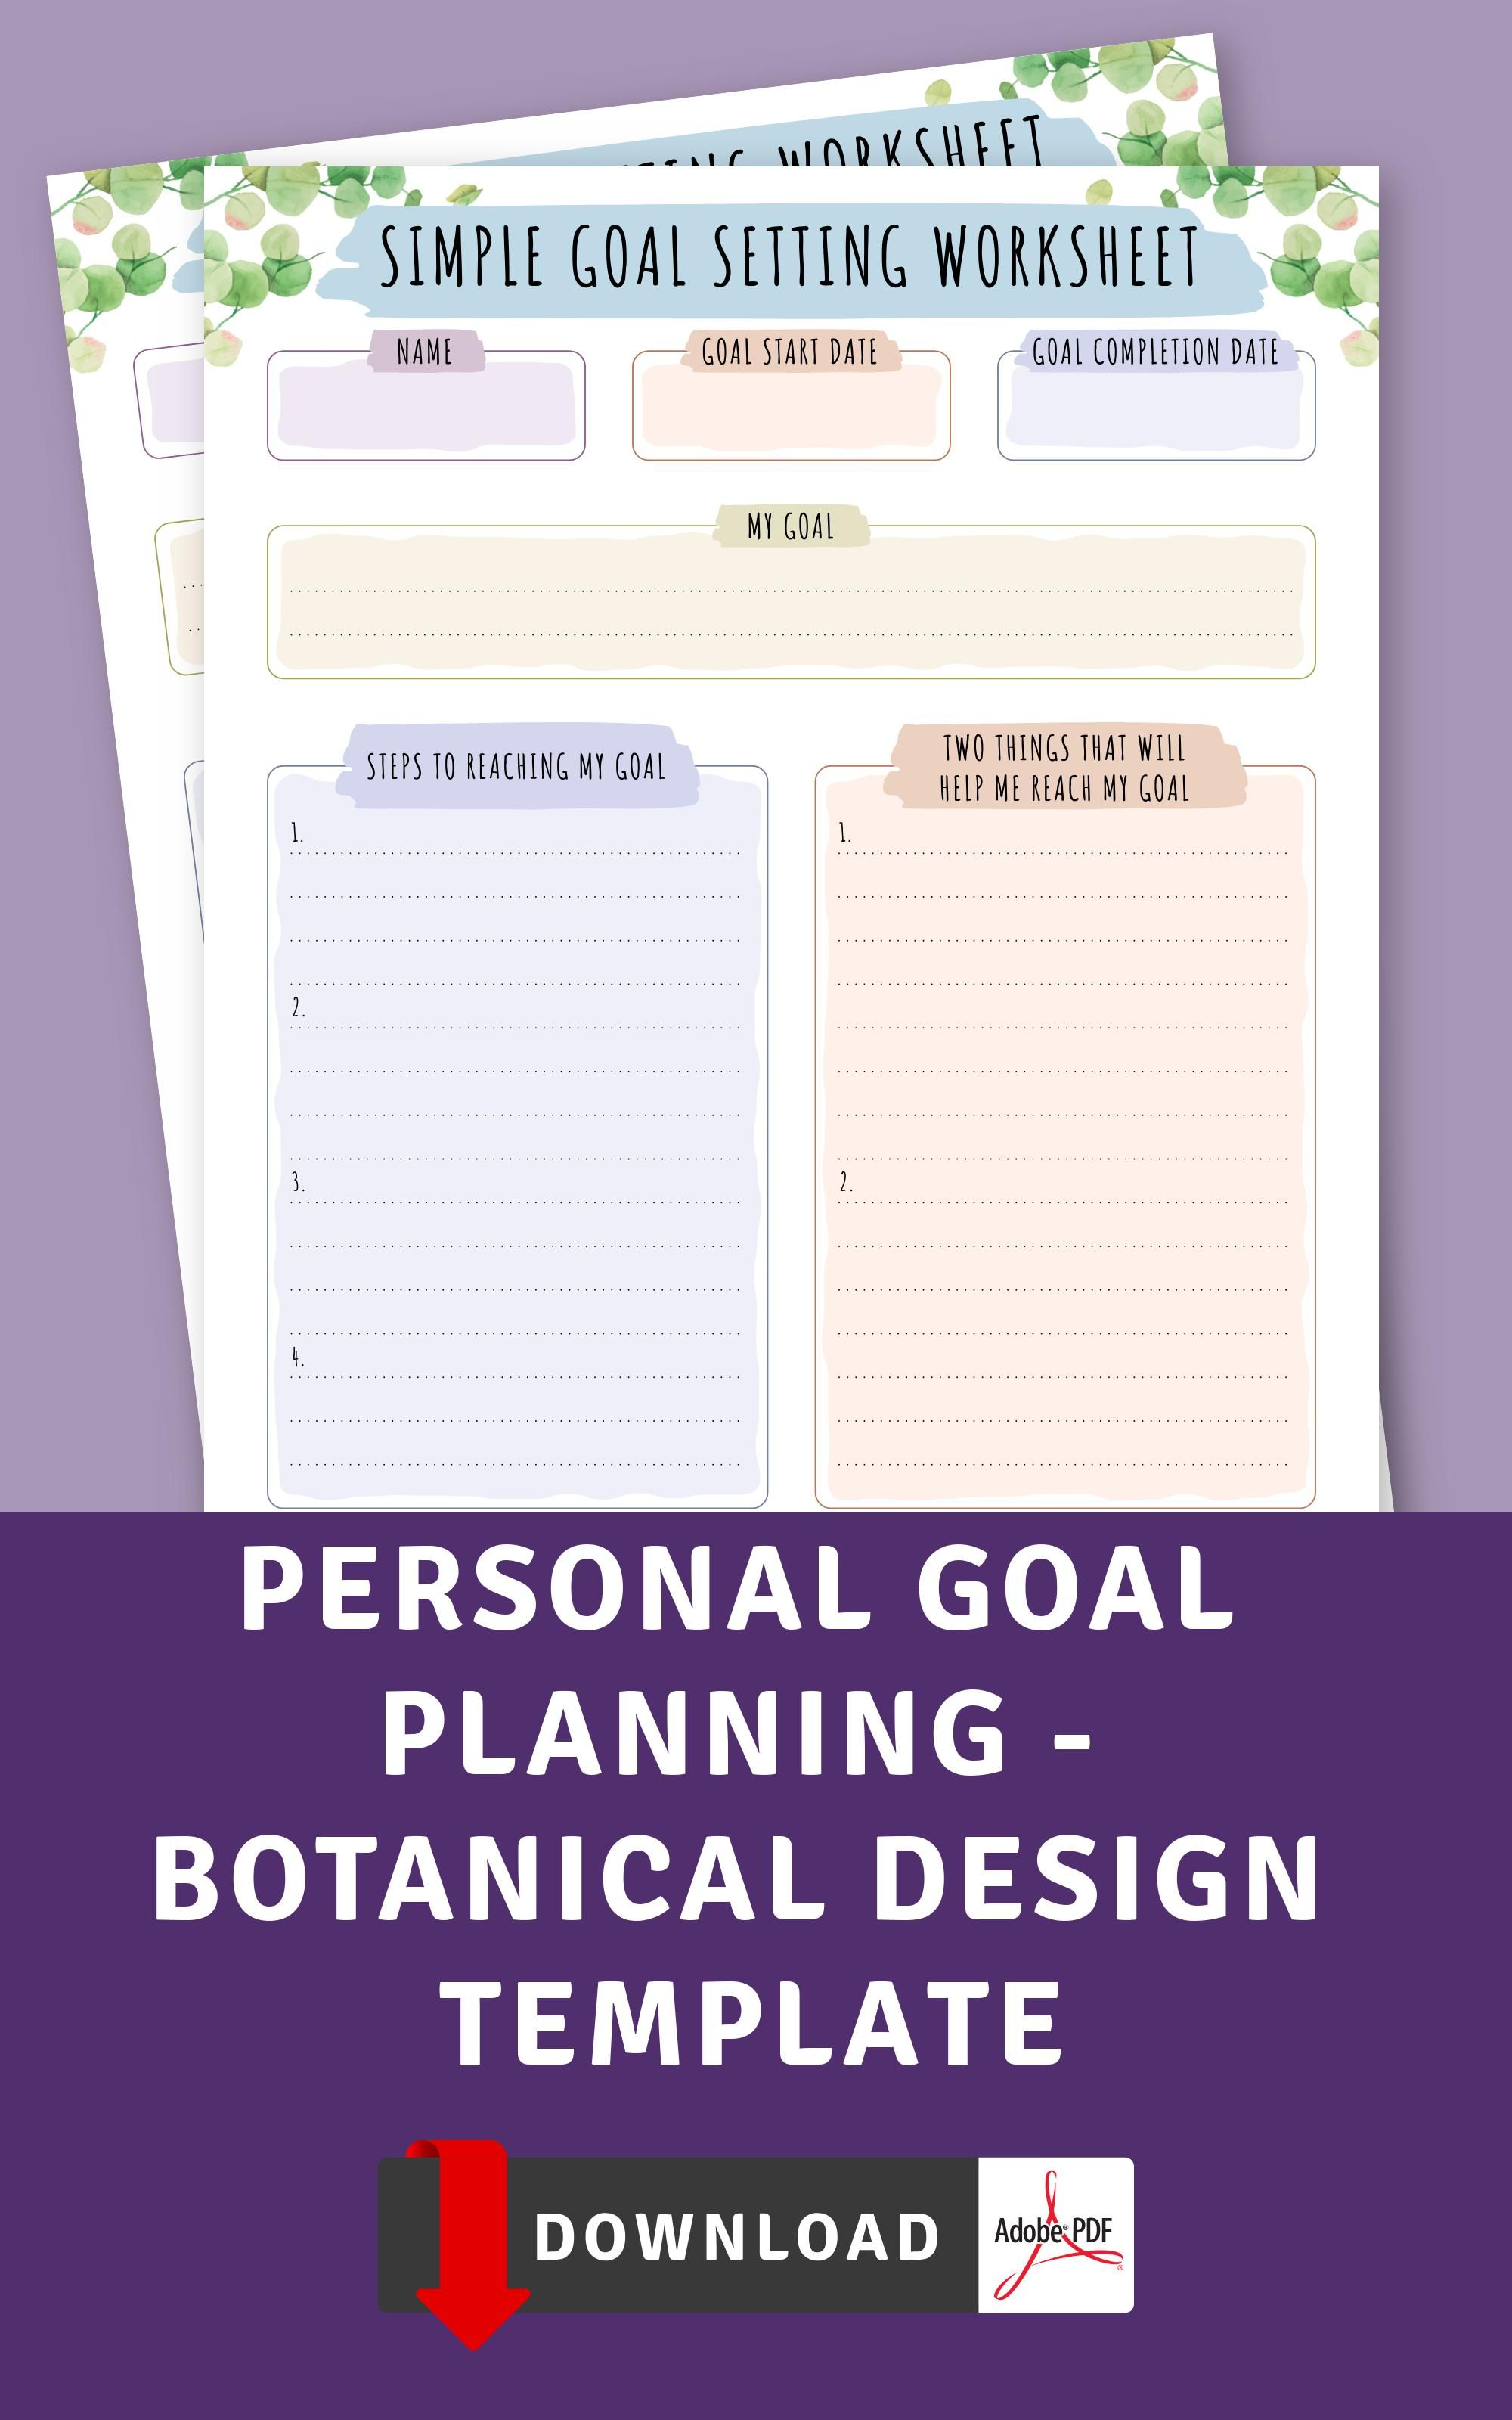 Personal Goal Planning